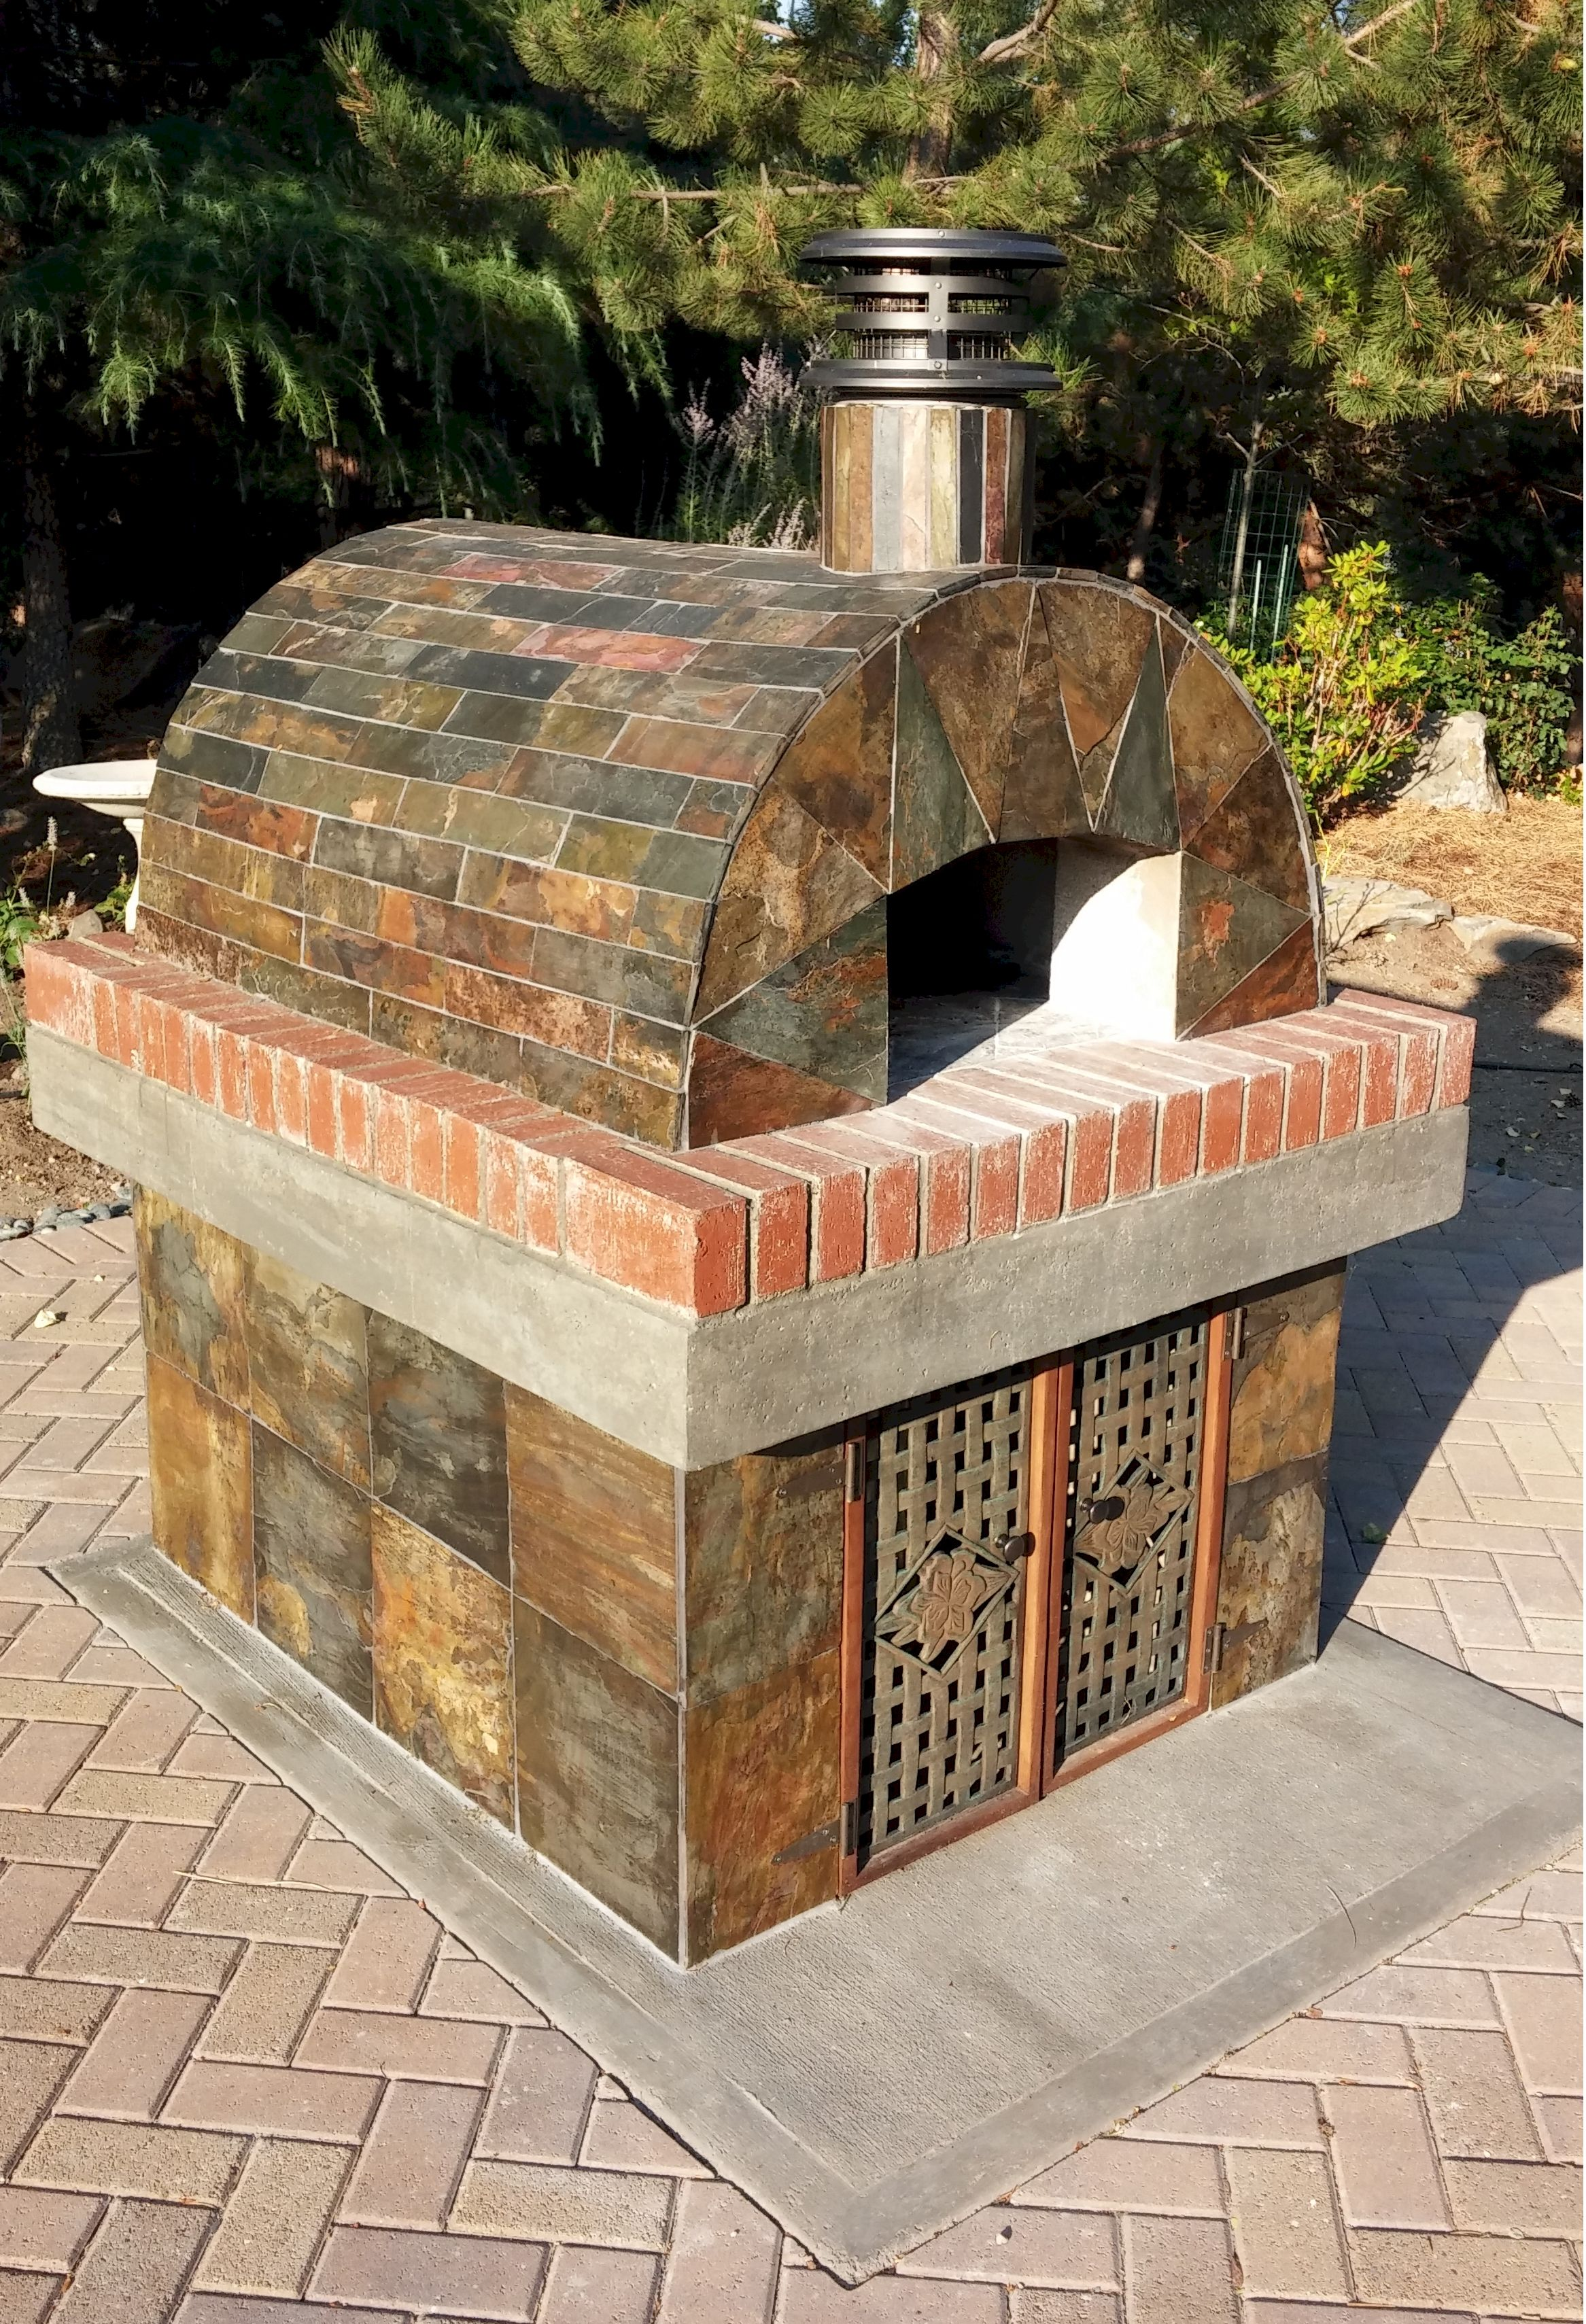 This Beautiful Wood Fired Pizza Oven Was Built With The Cortile Barile Foam Pizza Oven Kit What Makes T Brick Pizza Oven Outdoor Pizza Oven Outdoor Pizza Oven